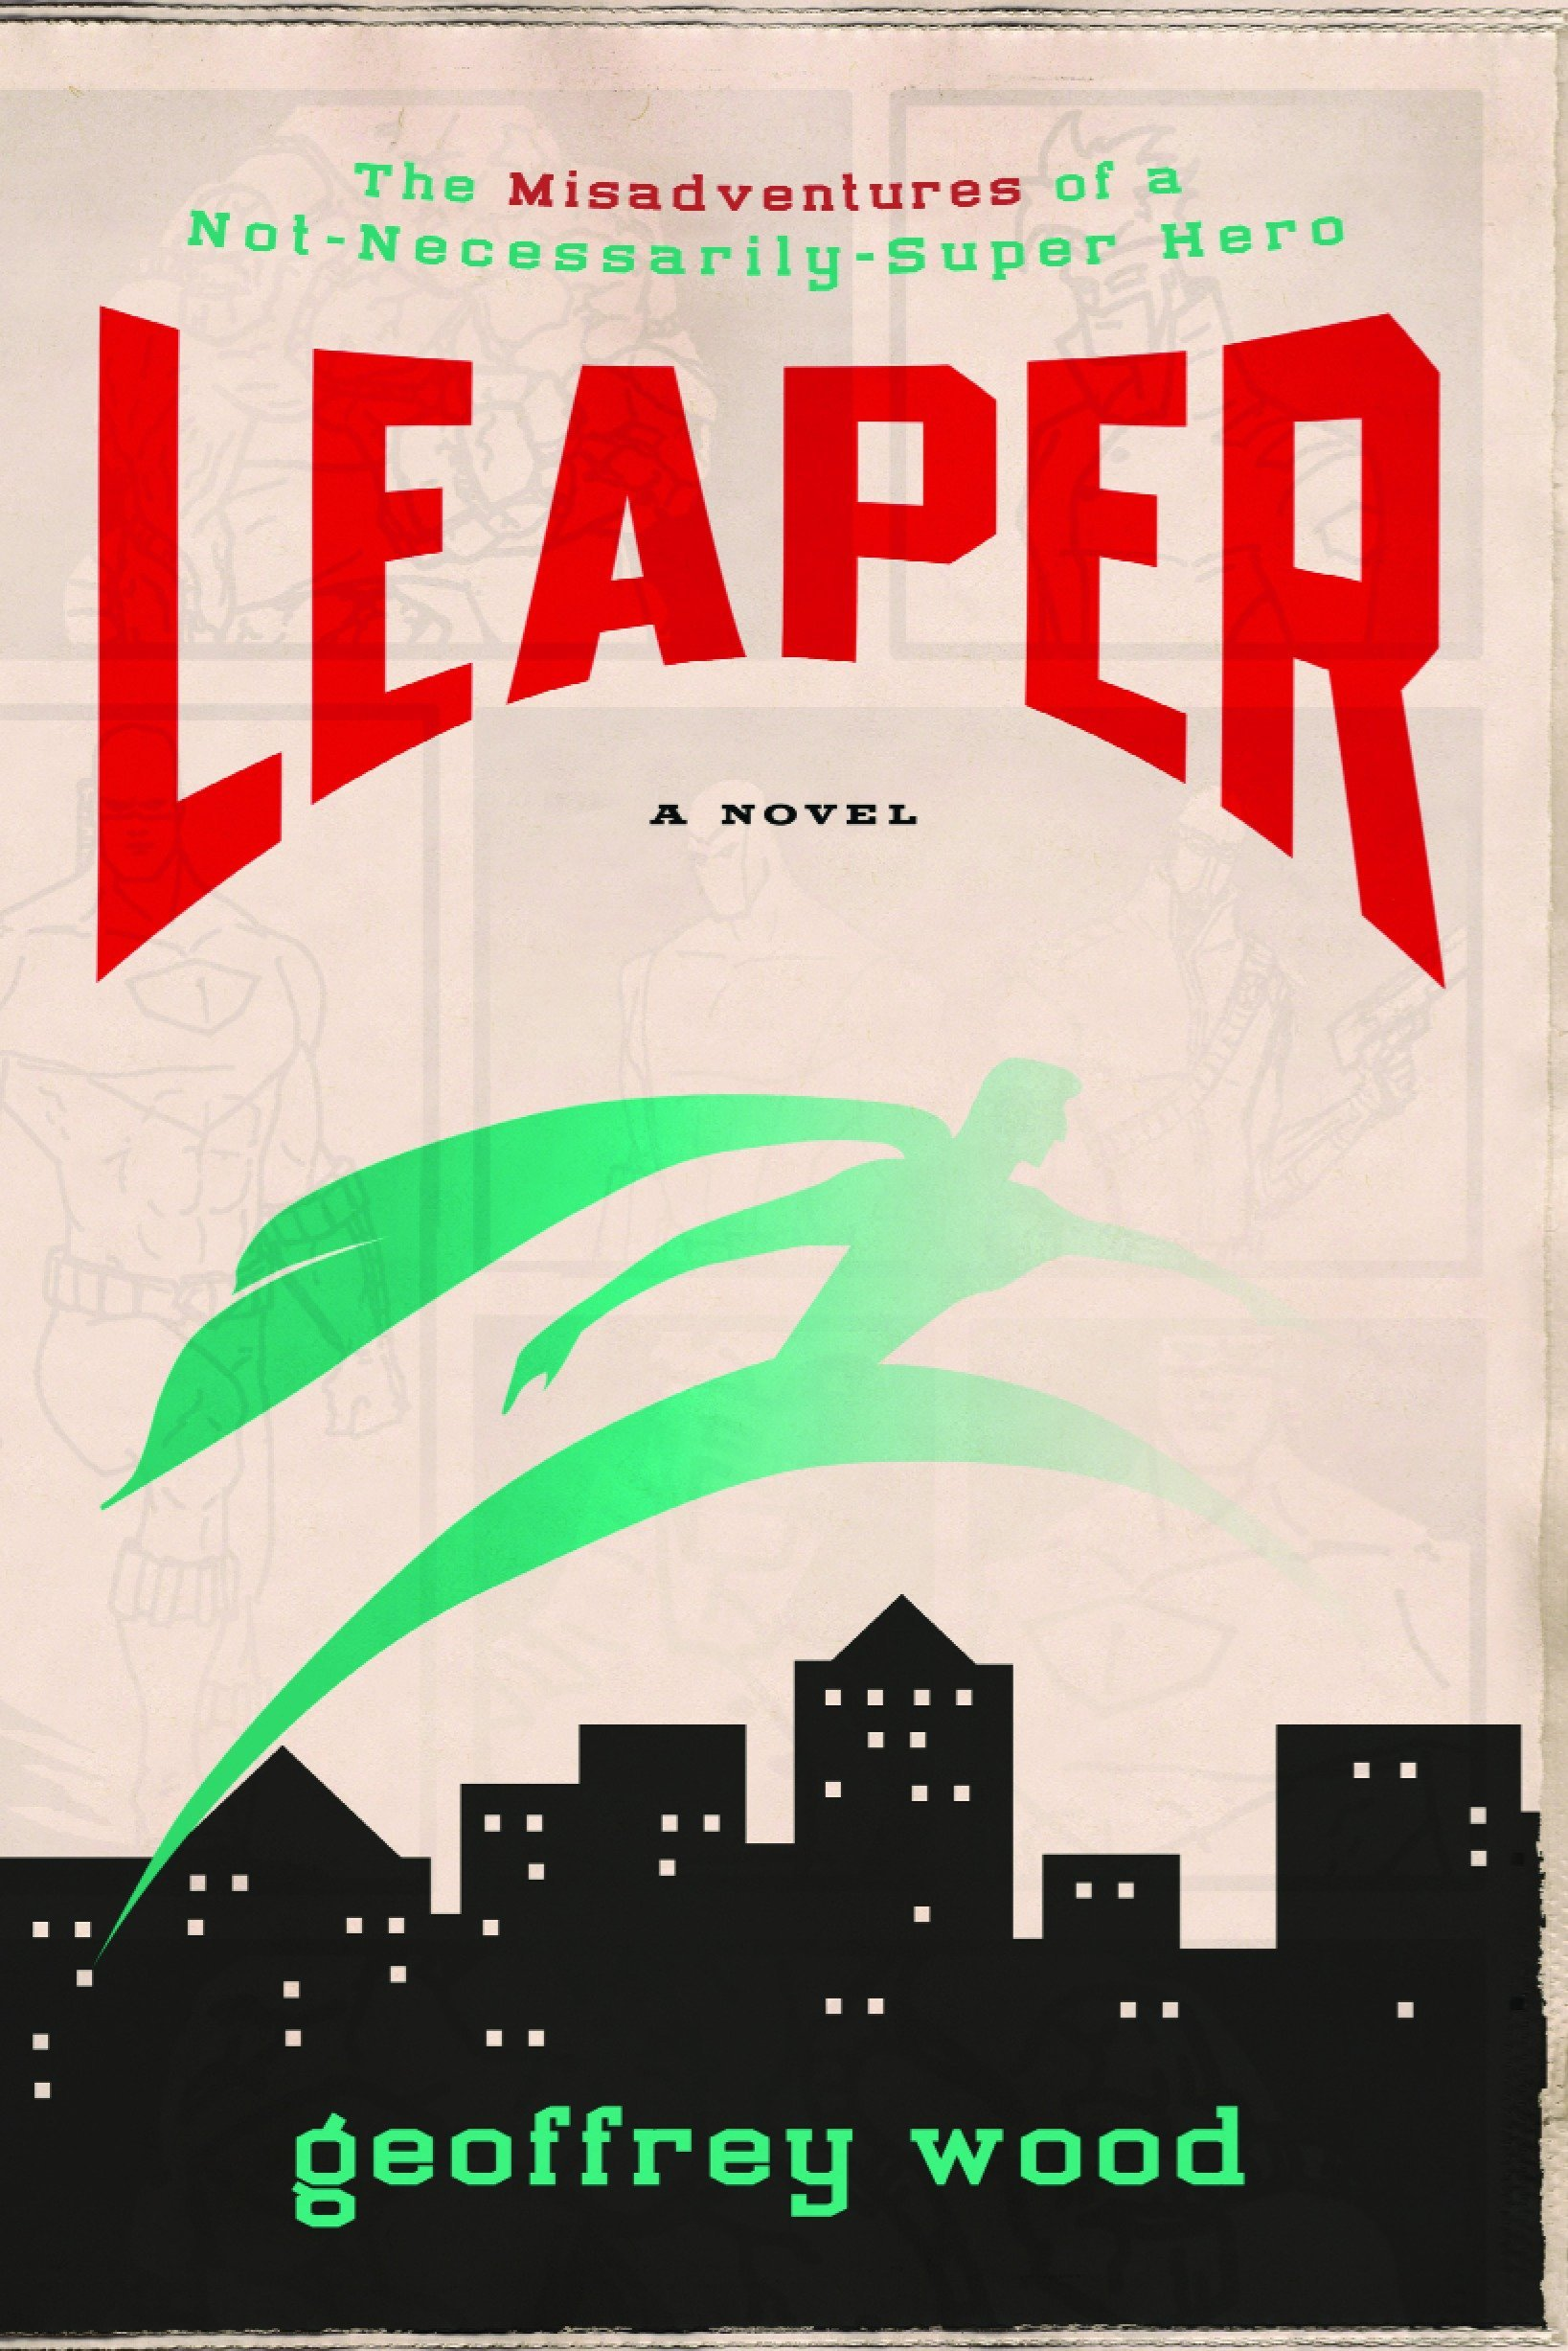 Leaper the misadventures of a not necessarily super hero geoffrey leaper the misadventures of a not necessarily super hero geoffrey wood 9781400073436 amazon books fandeluxe Choice Image